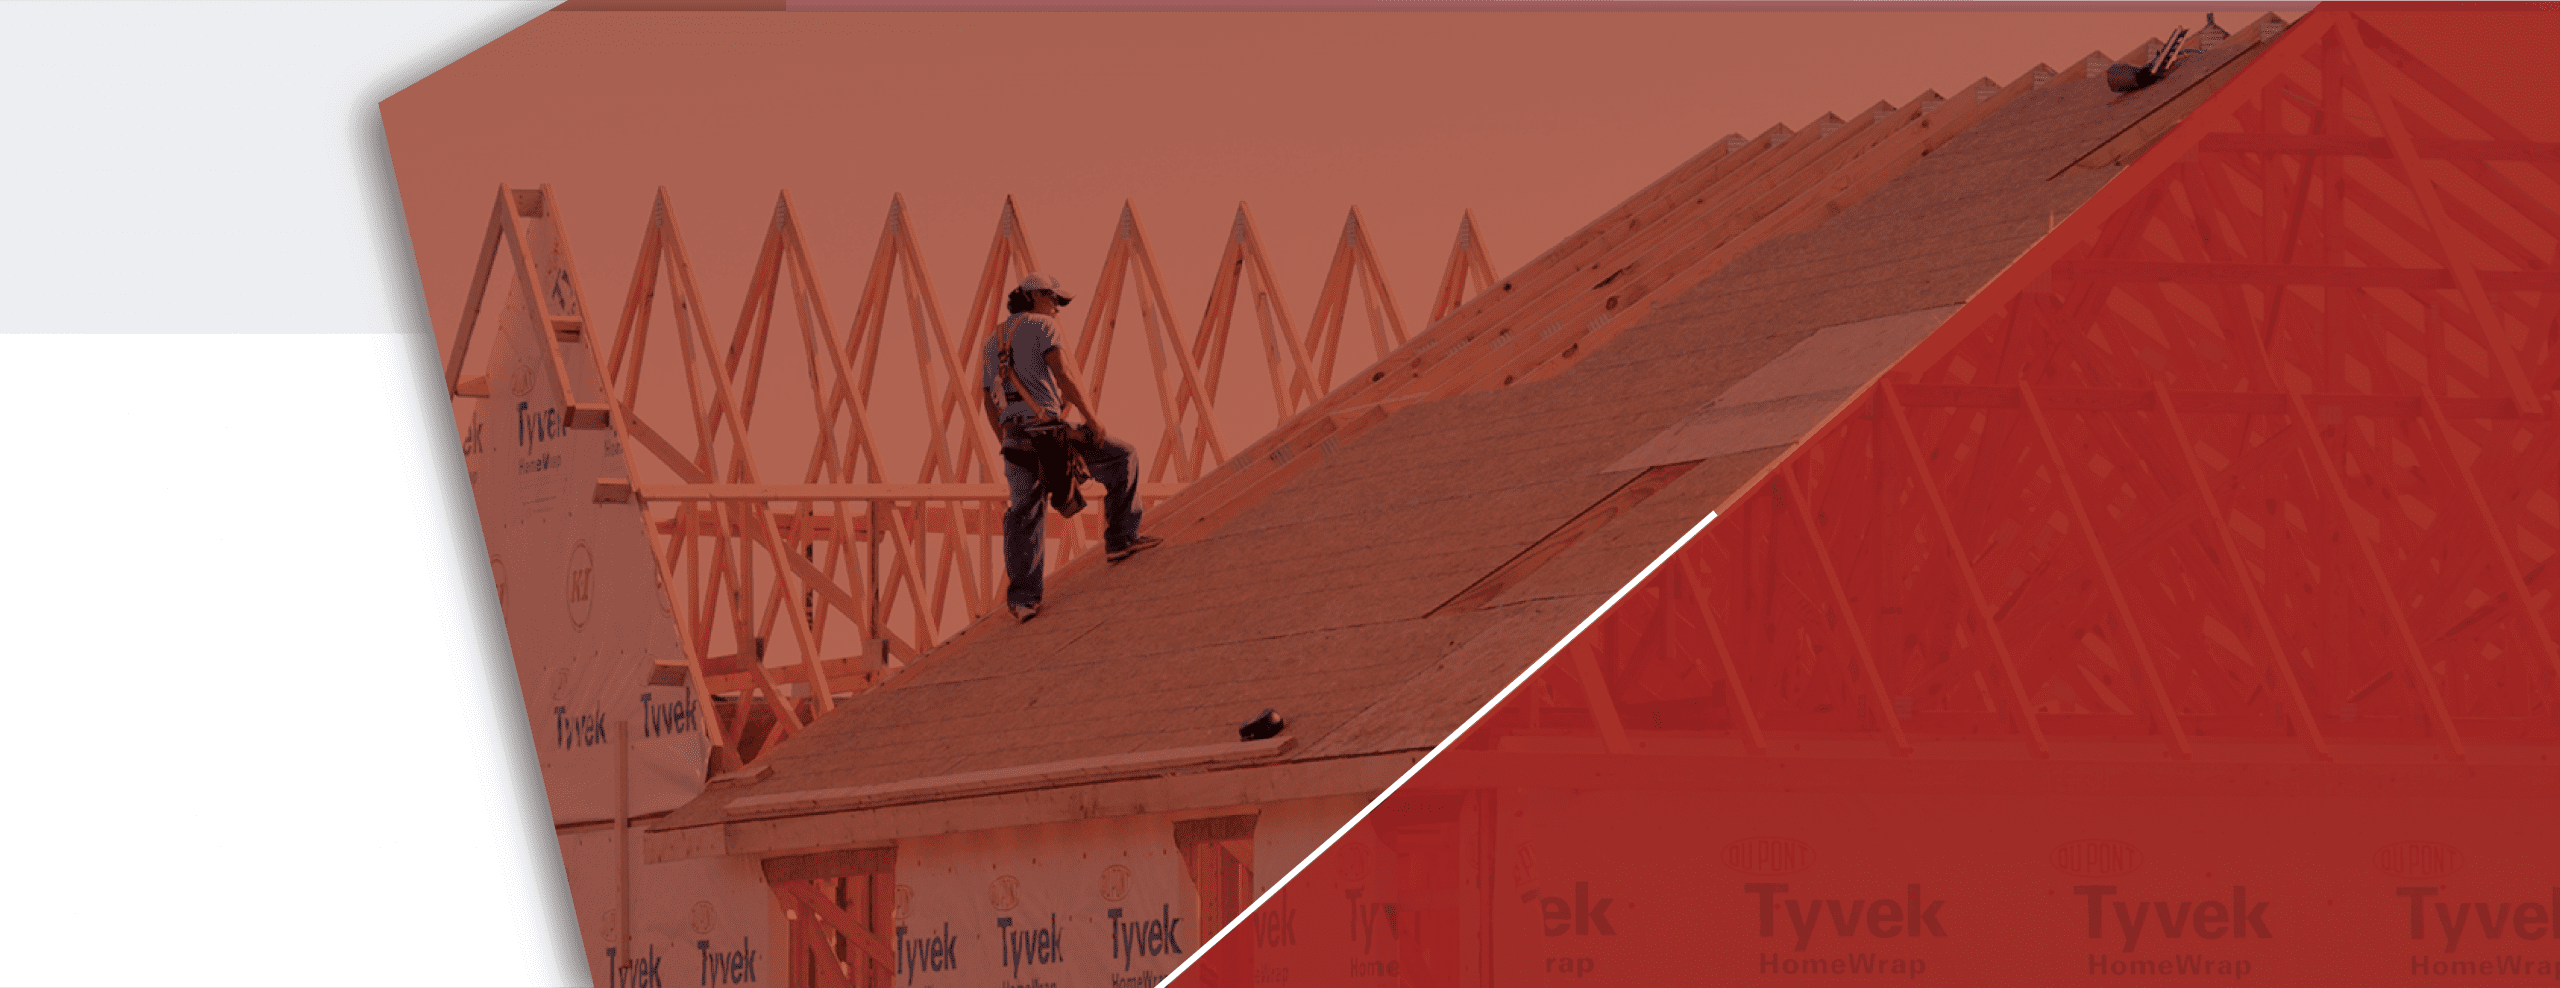 perry's construction roofing